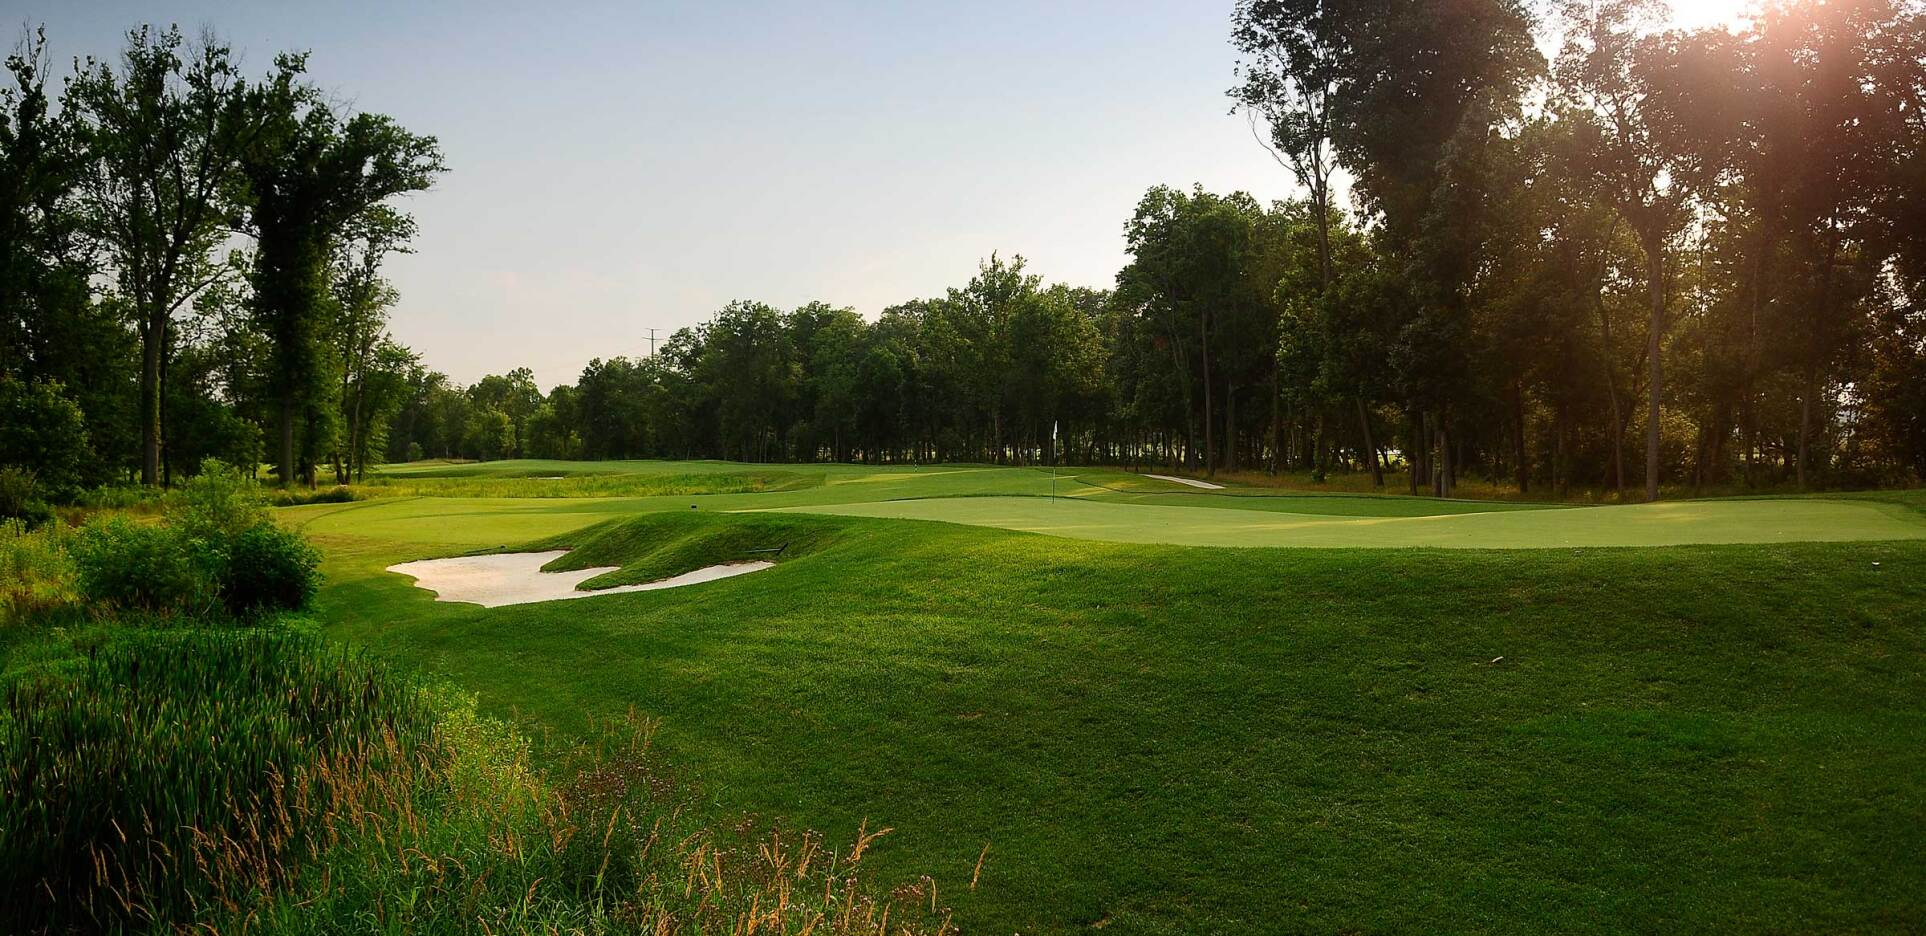 1757 Golf Club, 18 hole golf course in Dulles Virginia a suburb of Northern Virginia